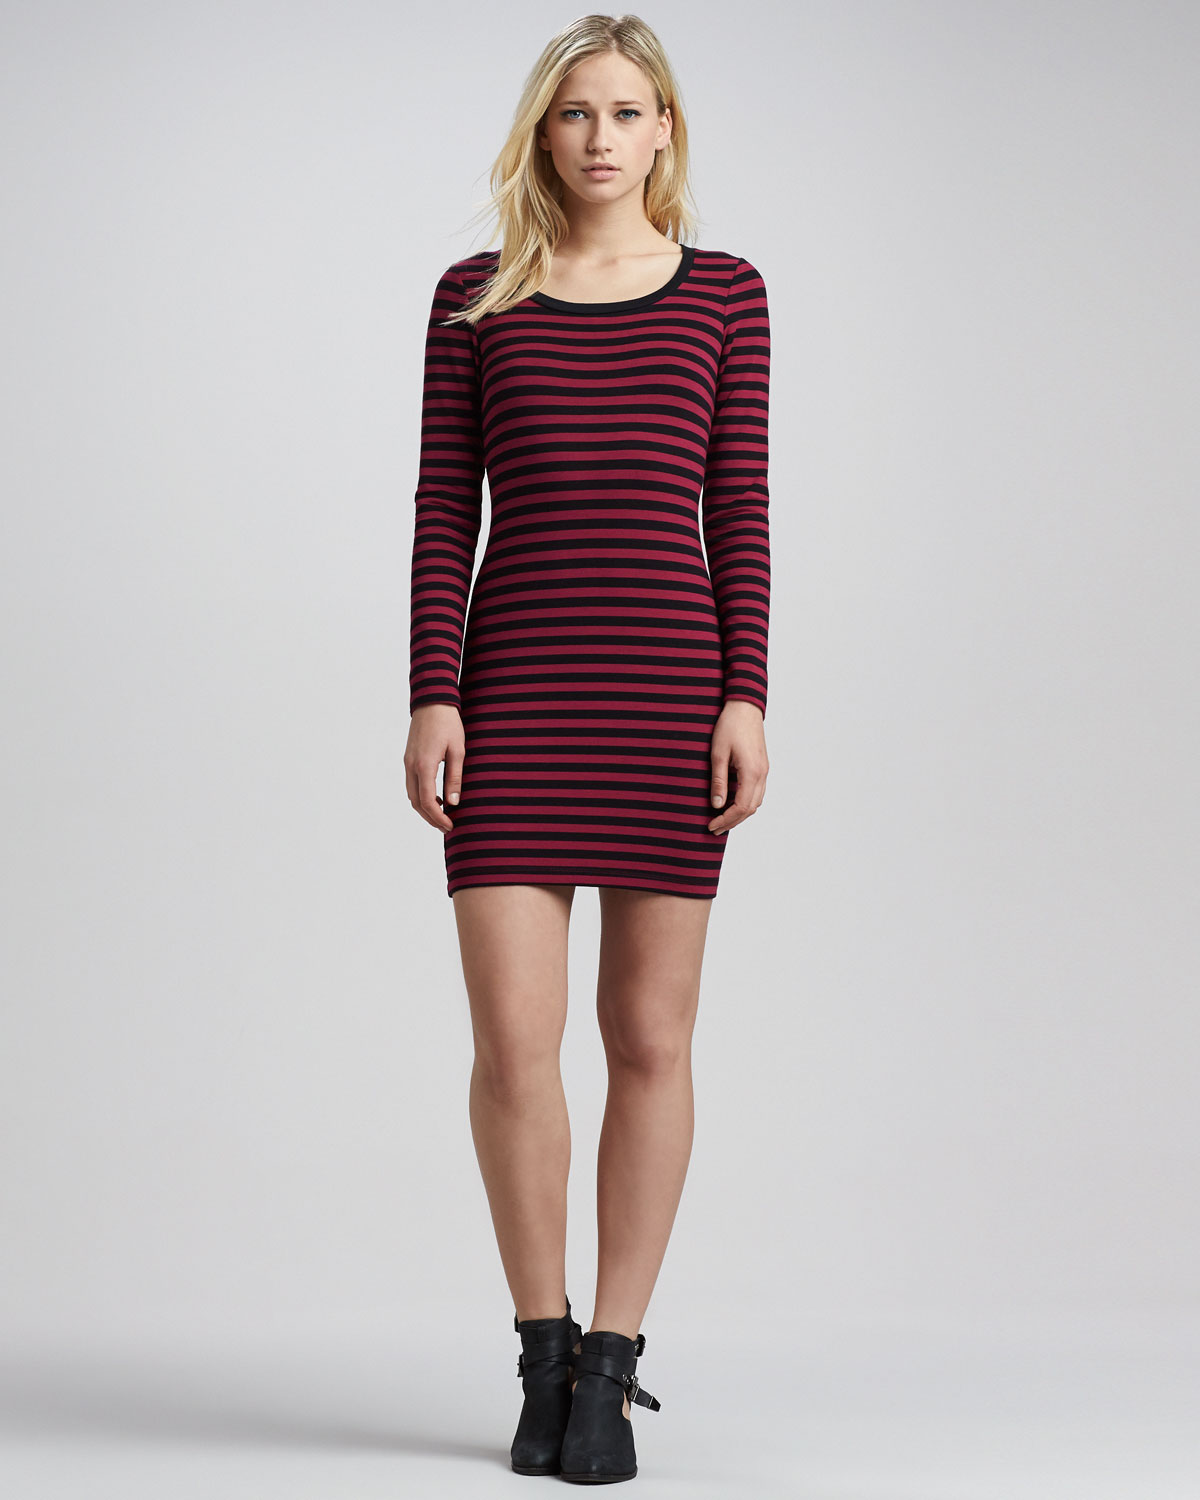 Splendid Sangria Fitted Longsleeve Striped Dress in Purple | Lyst